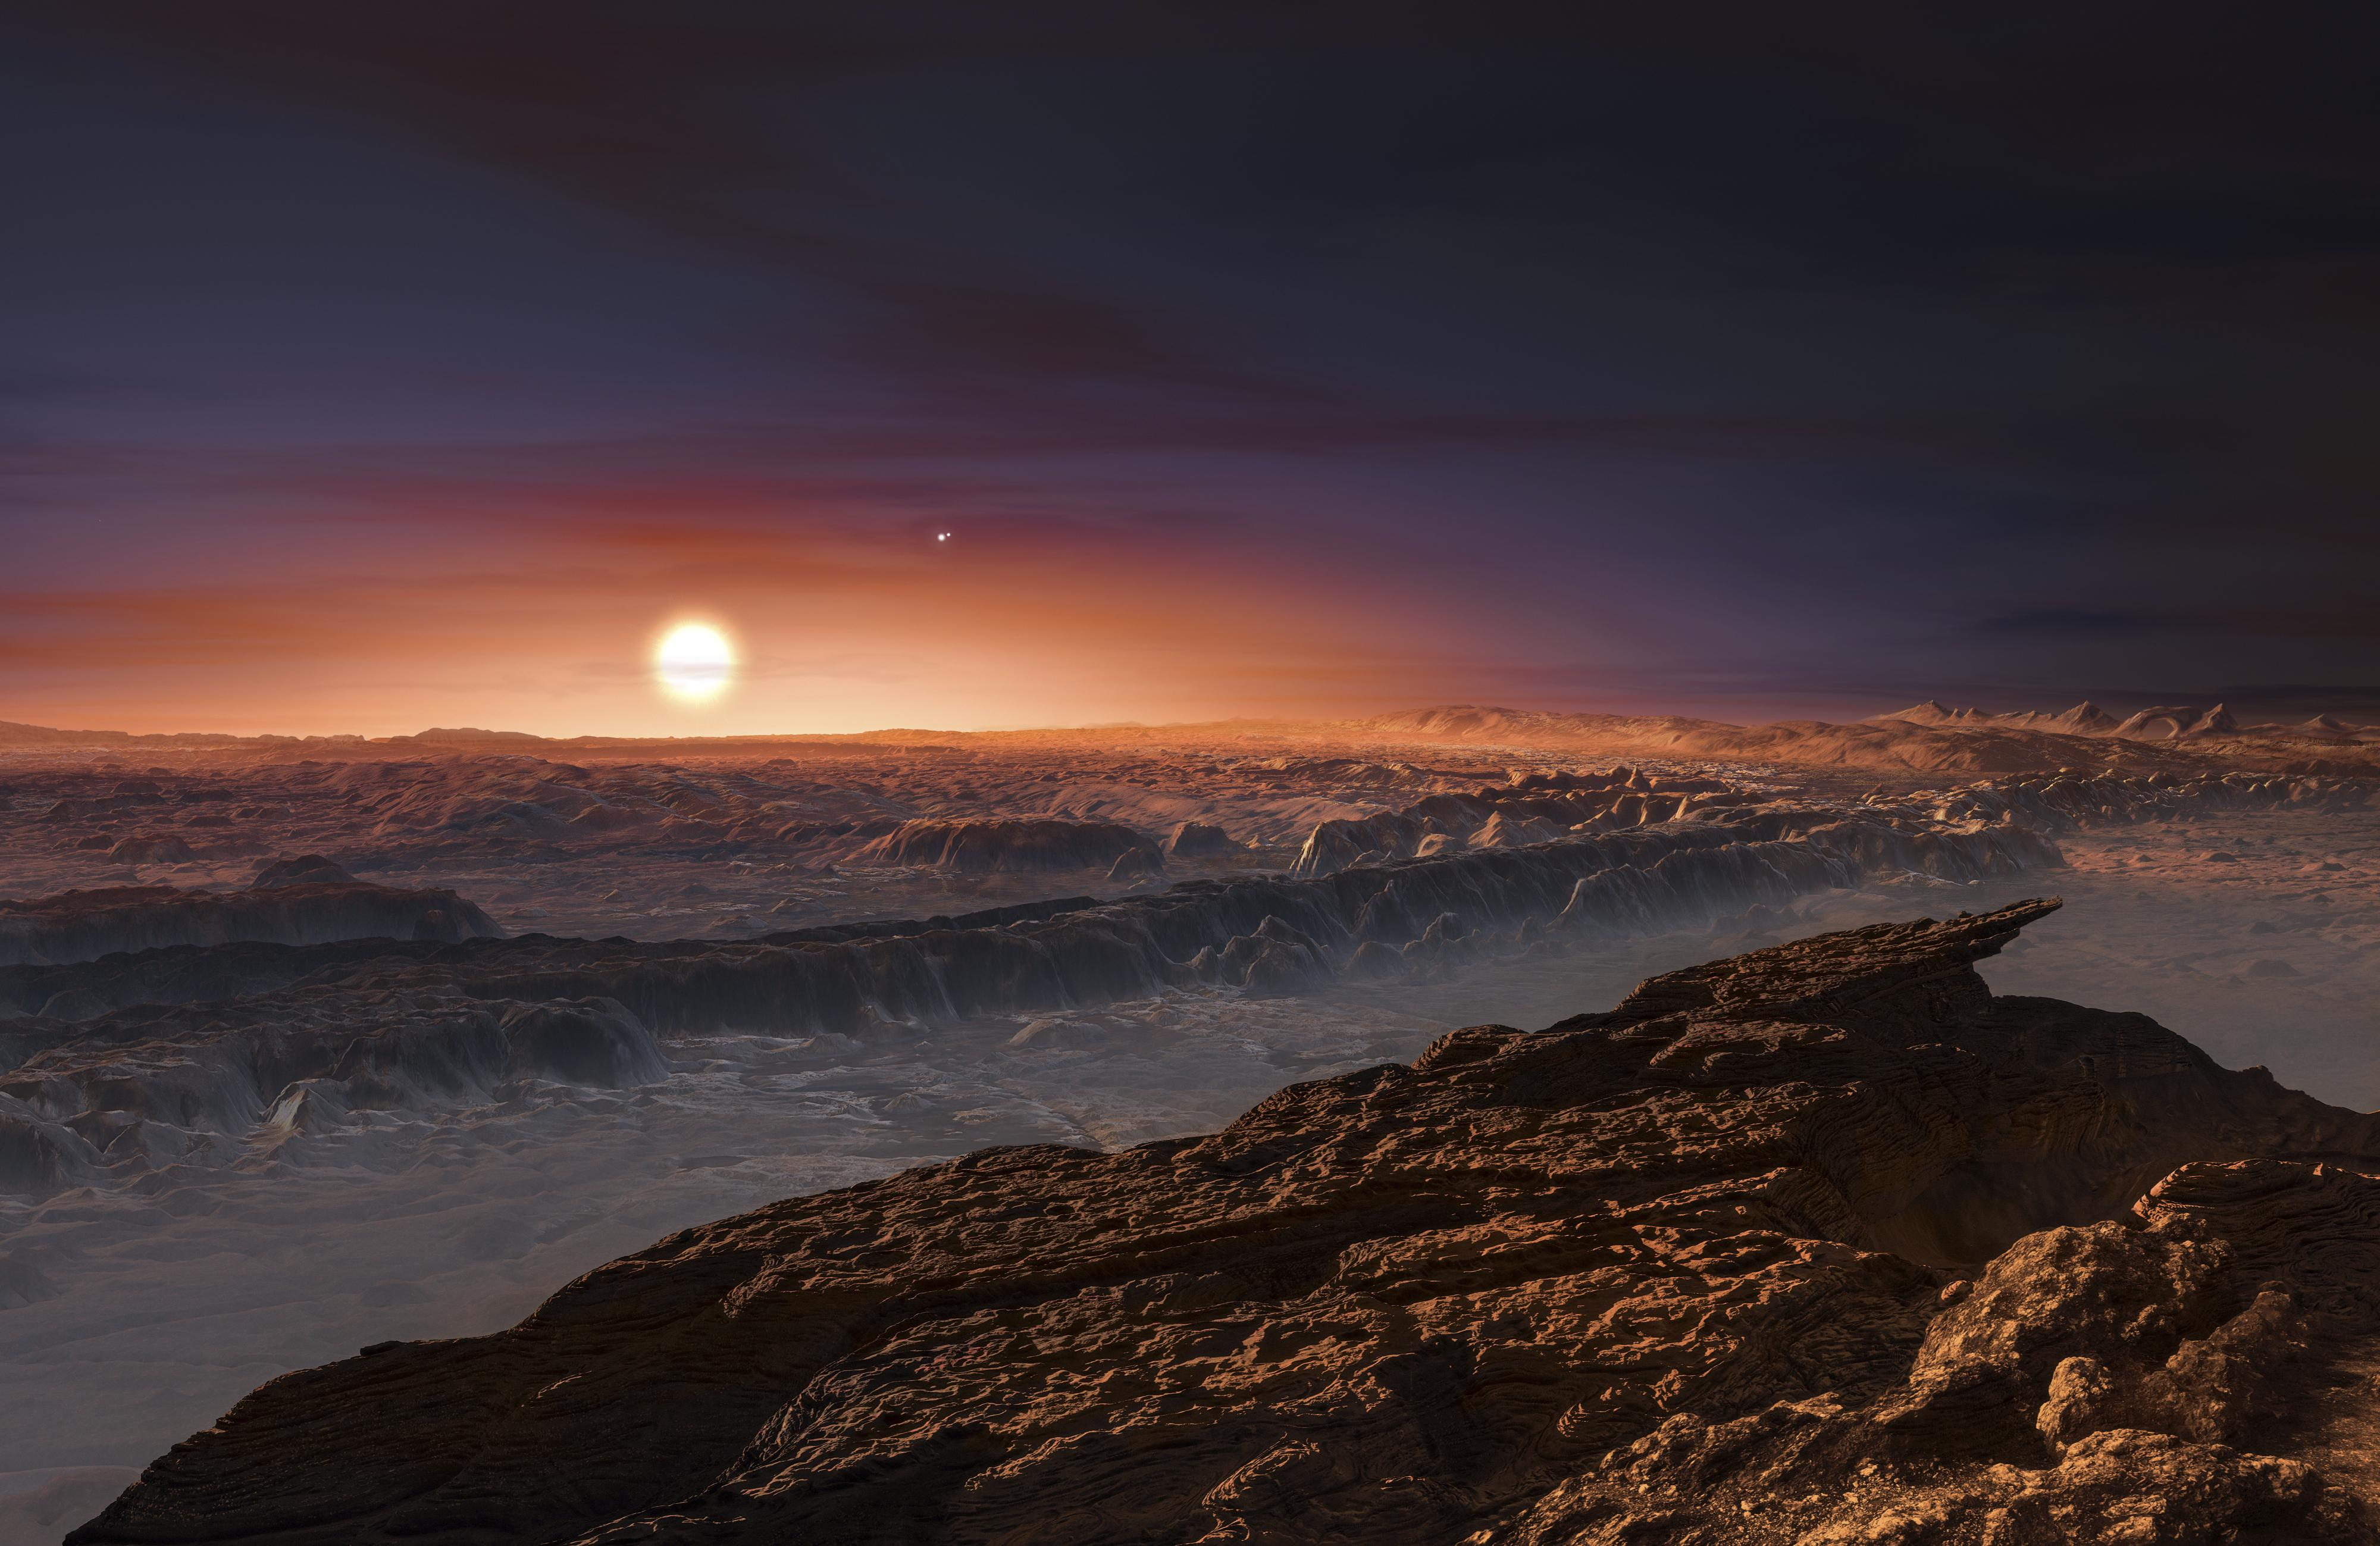 Proxima Centauri Orbits Alpha Centauri Pair, Astronomers Conclude 100 Years After Red Dwarf's Discovery